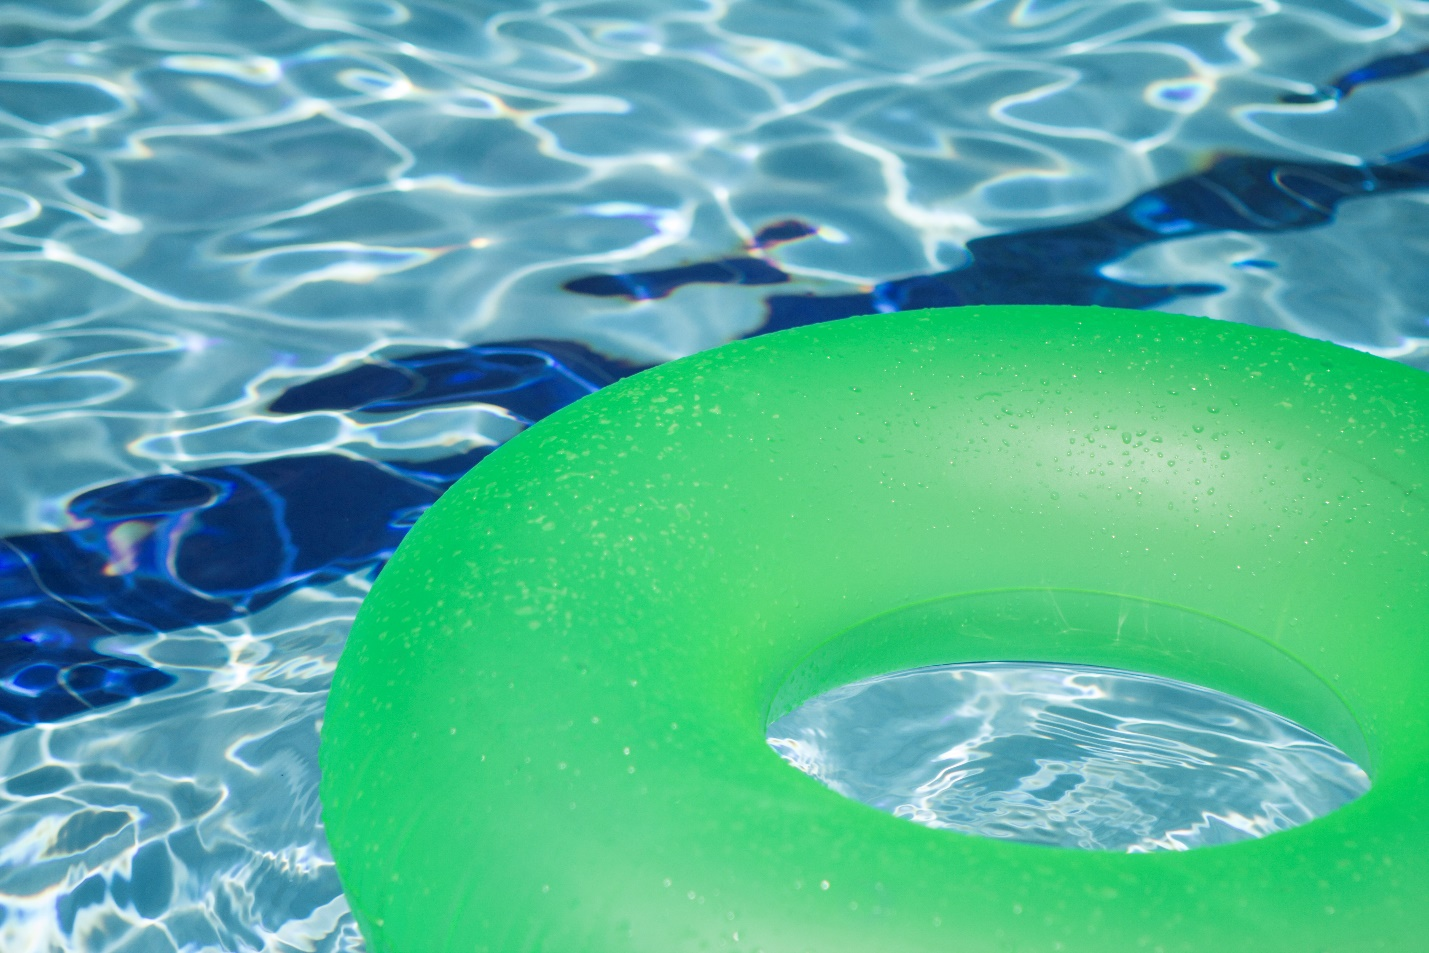 Dallas Above-Ground Swimming Pool Defect Lawyer